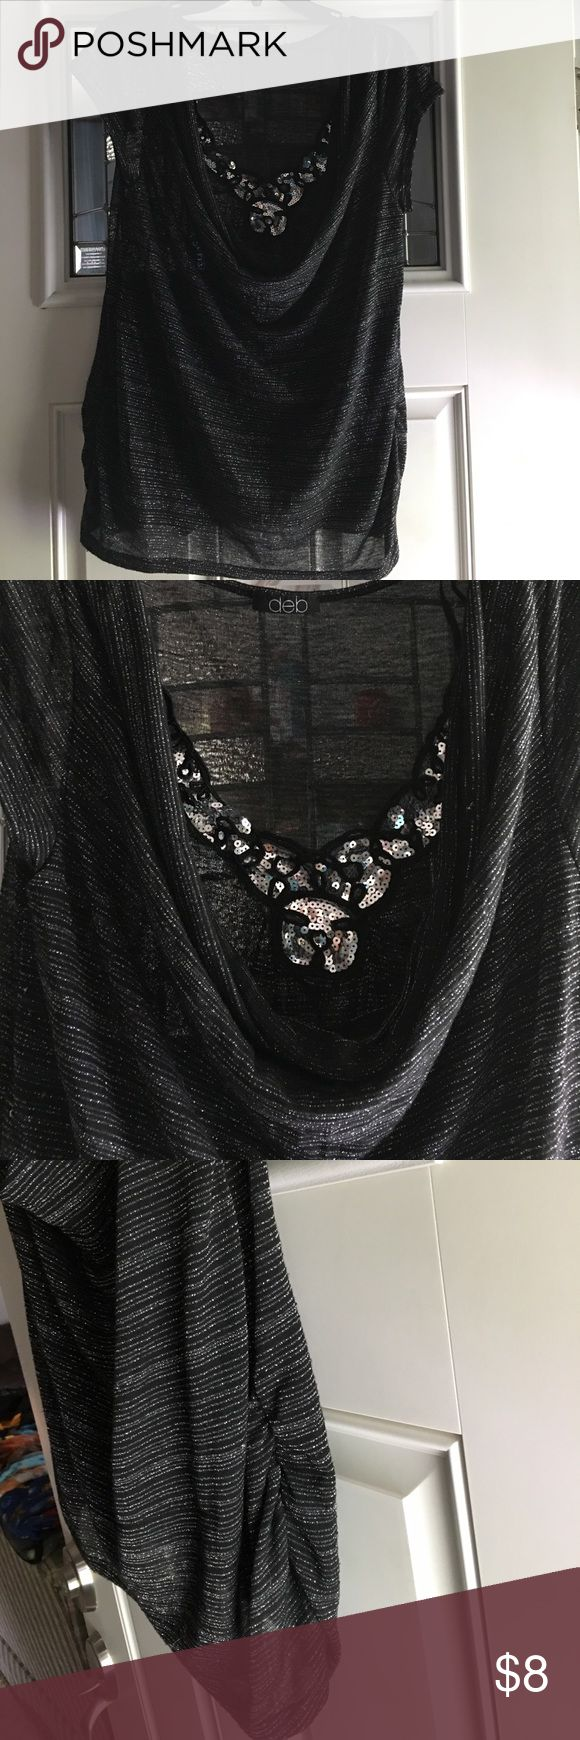 Nice Used Black and Silver Blouse Black with Silver scrunches on side. Size tag is missing Deb Tops Blouses